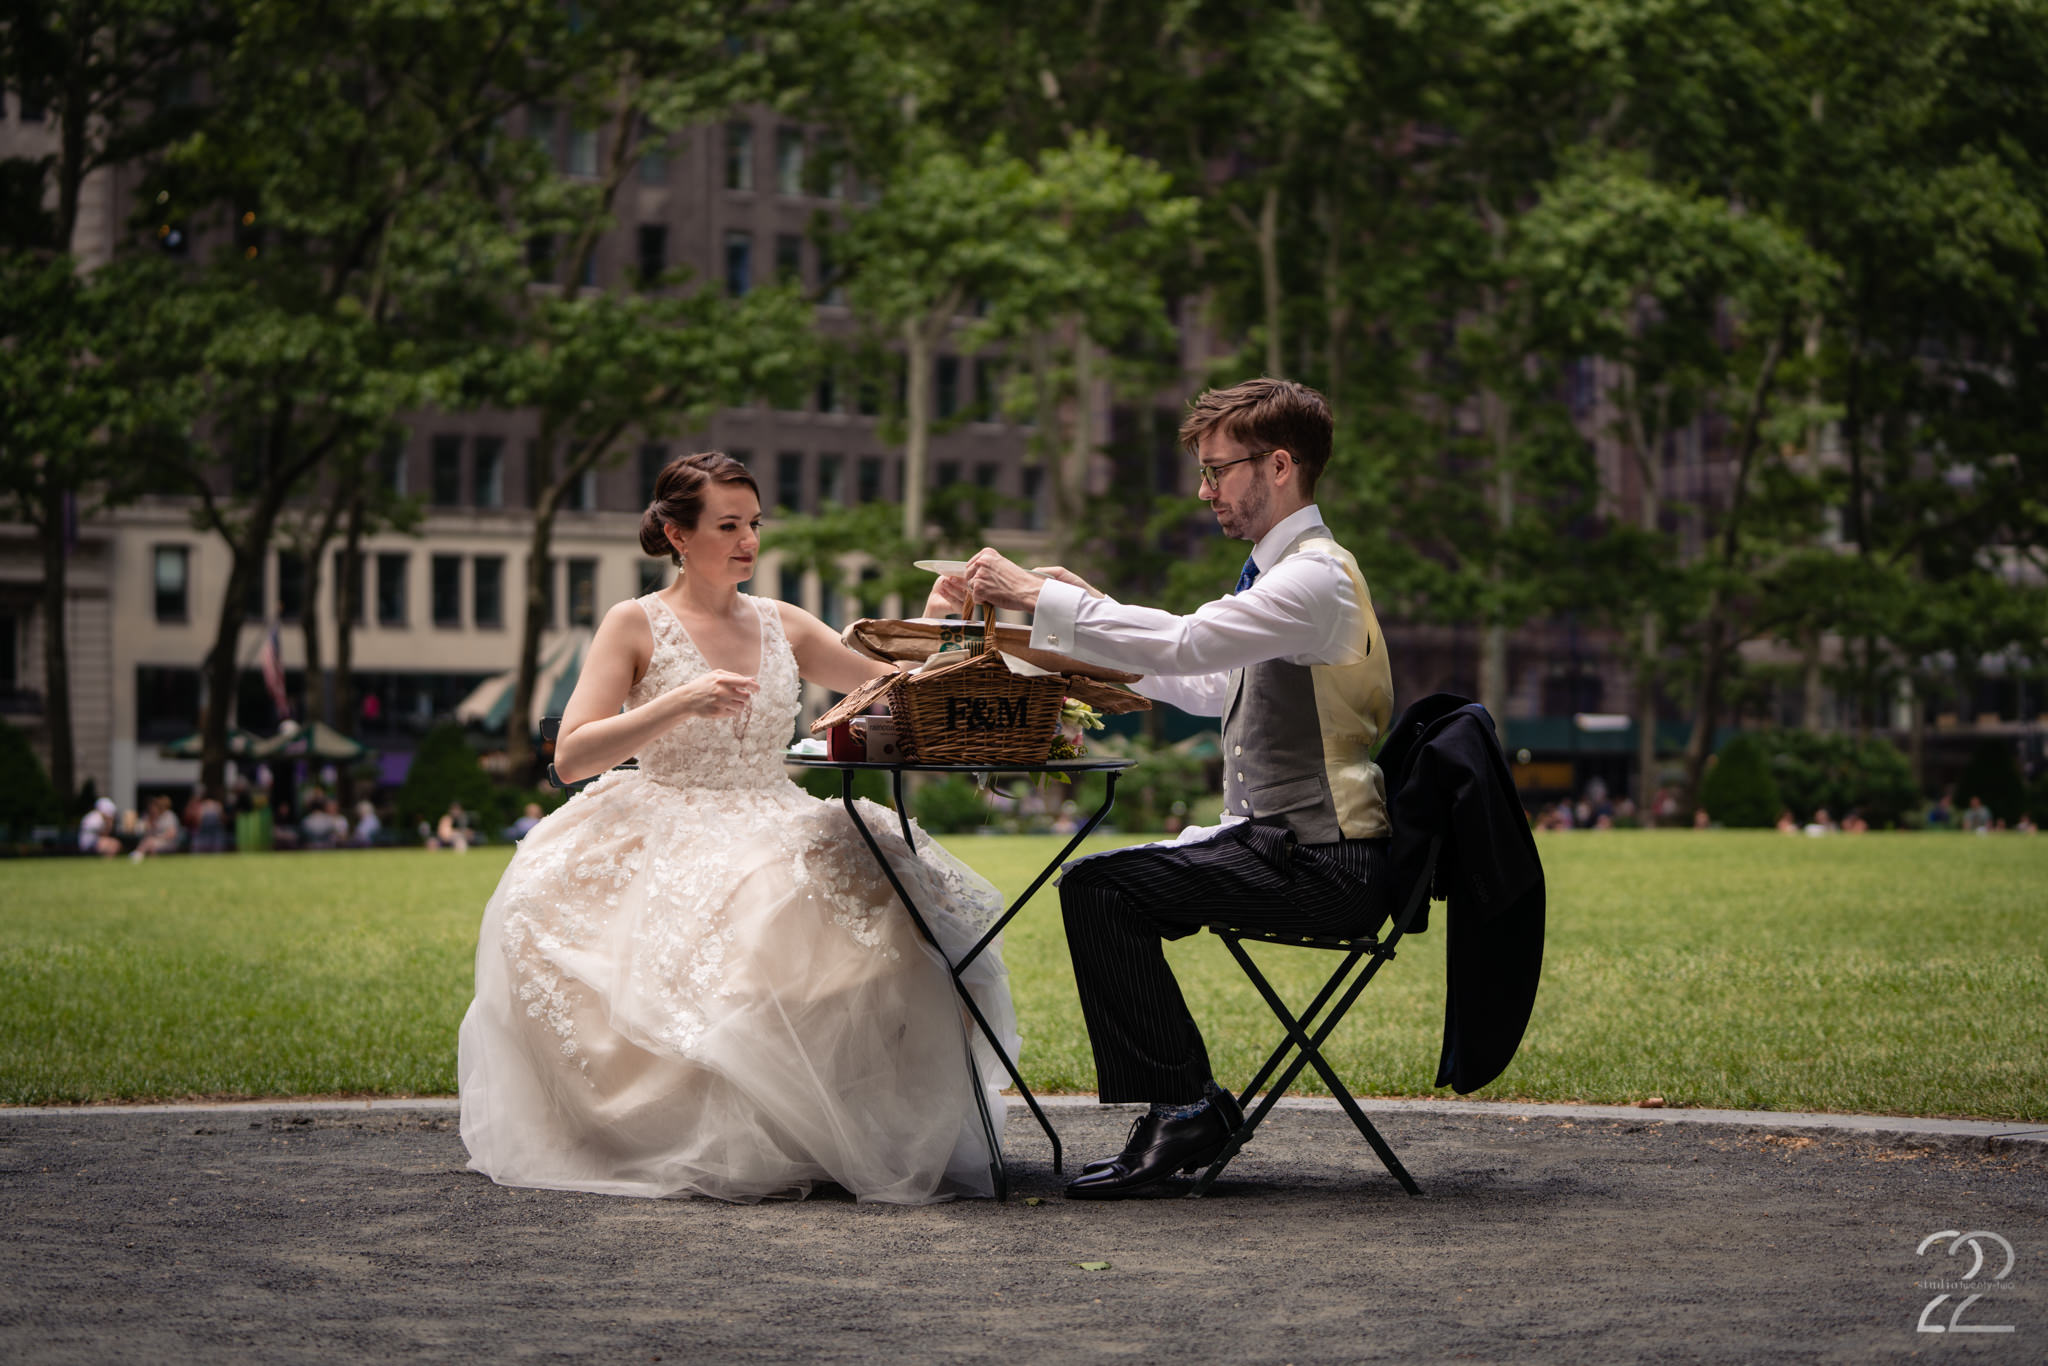 No two weddings are ever the same. Each couple puts a bit of themselves into making it their special day. Kenton and Sarah made sure that their day was perfectly them by adding all sorts of little touches such as this picnic in Bryant Park in New York City before the ceremony to get those extra nerves out.